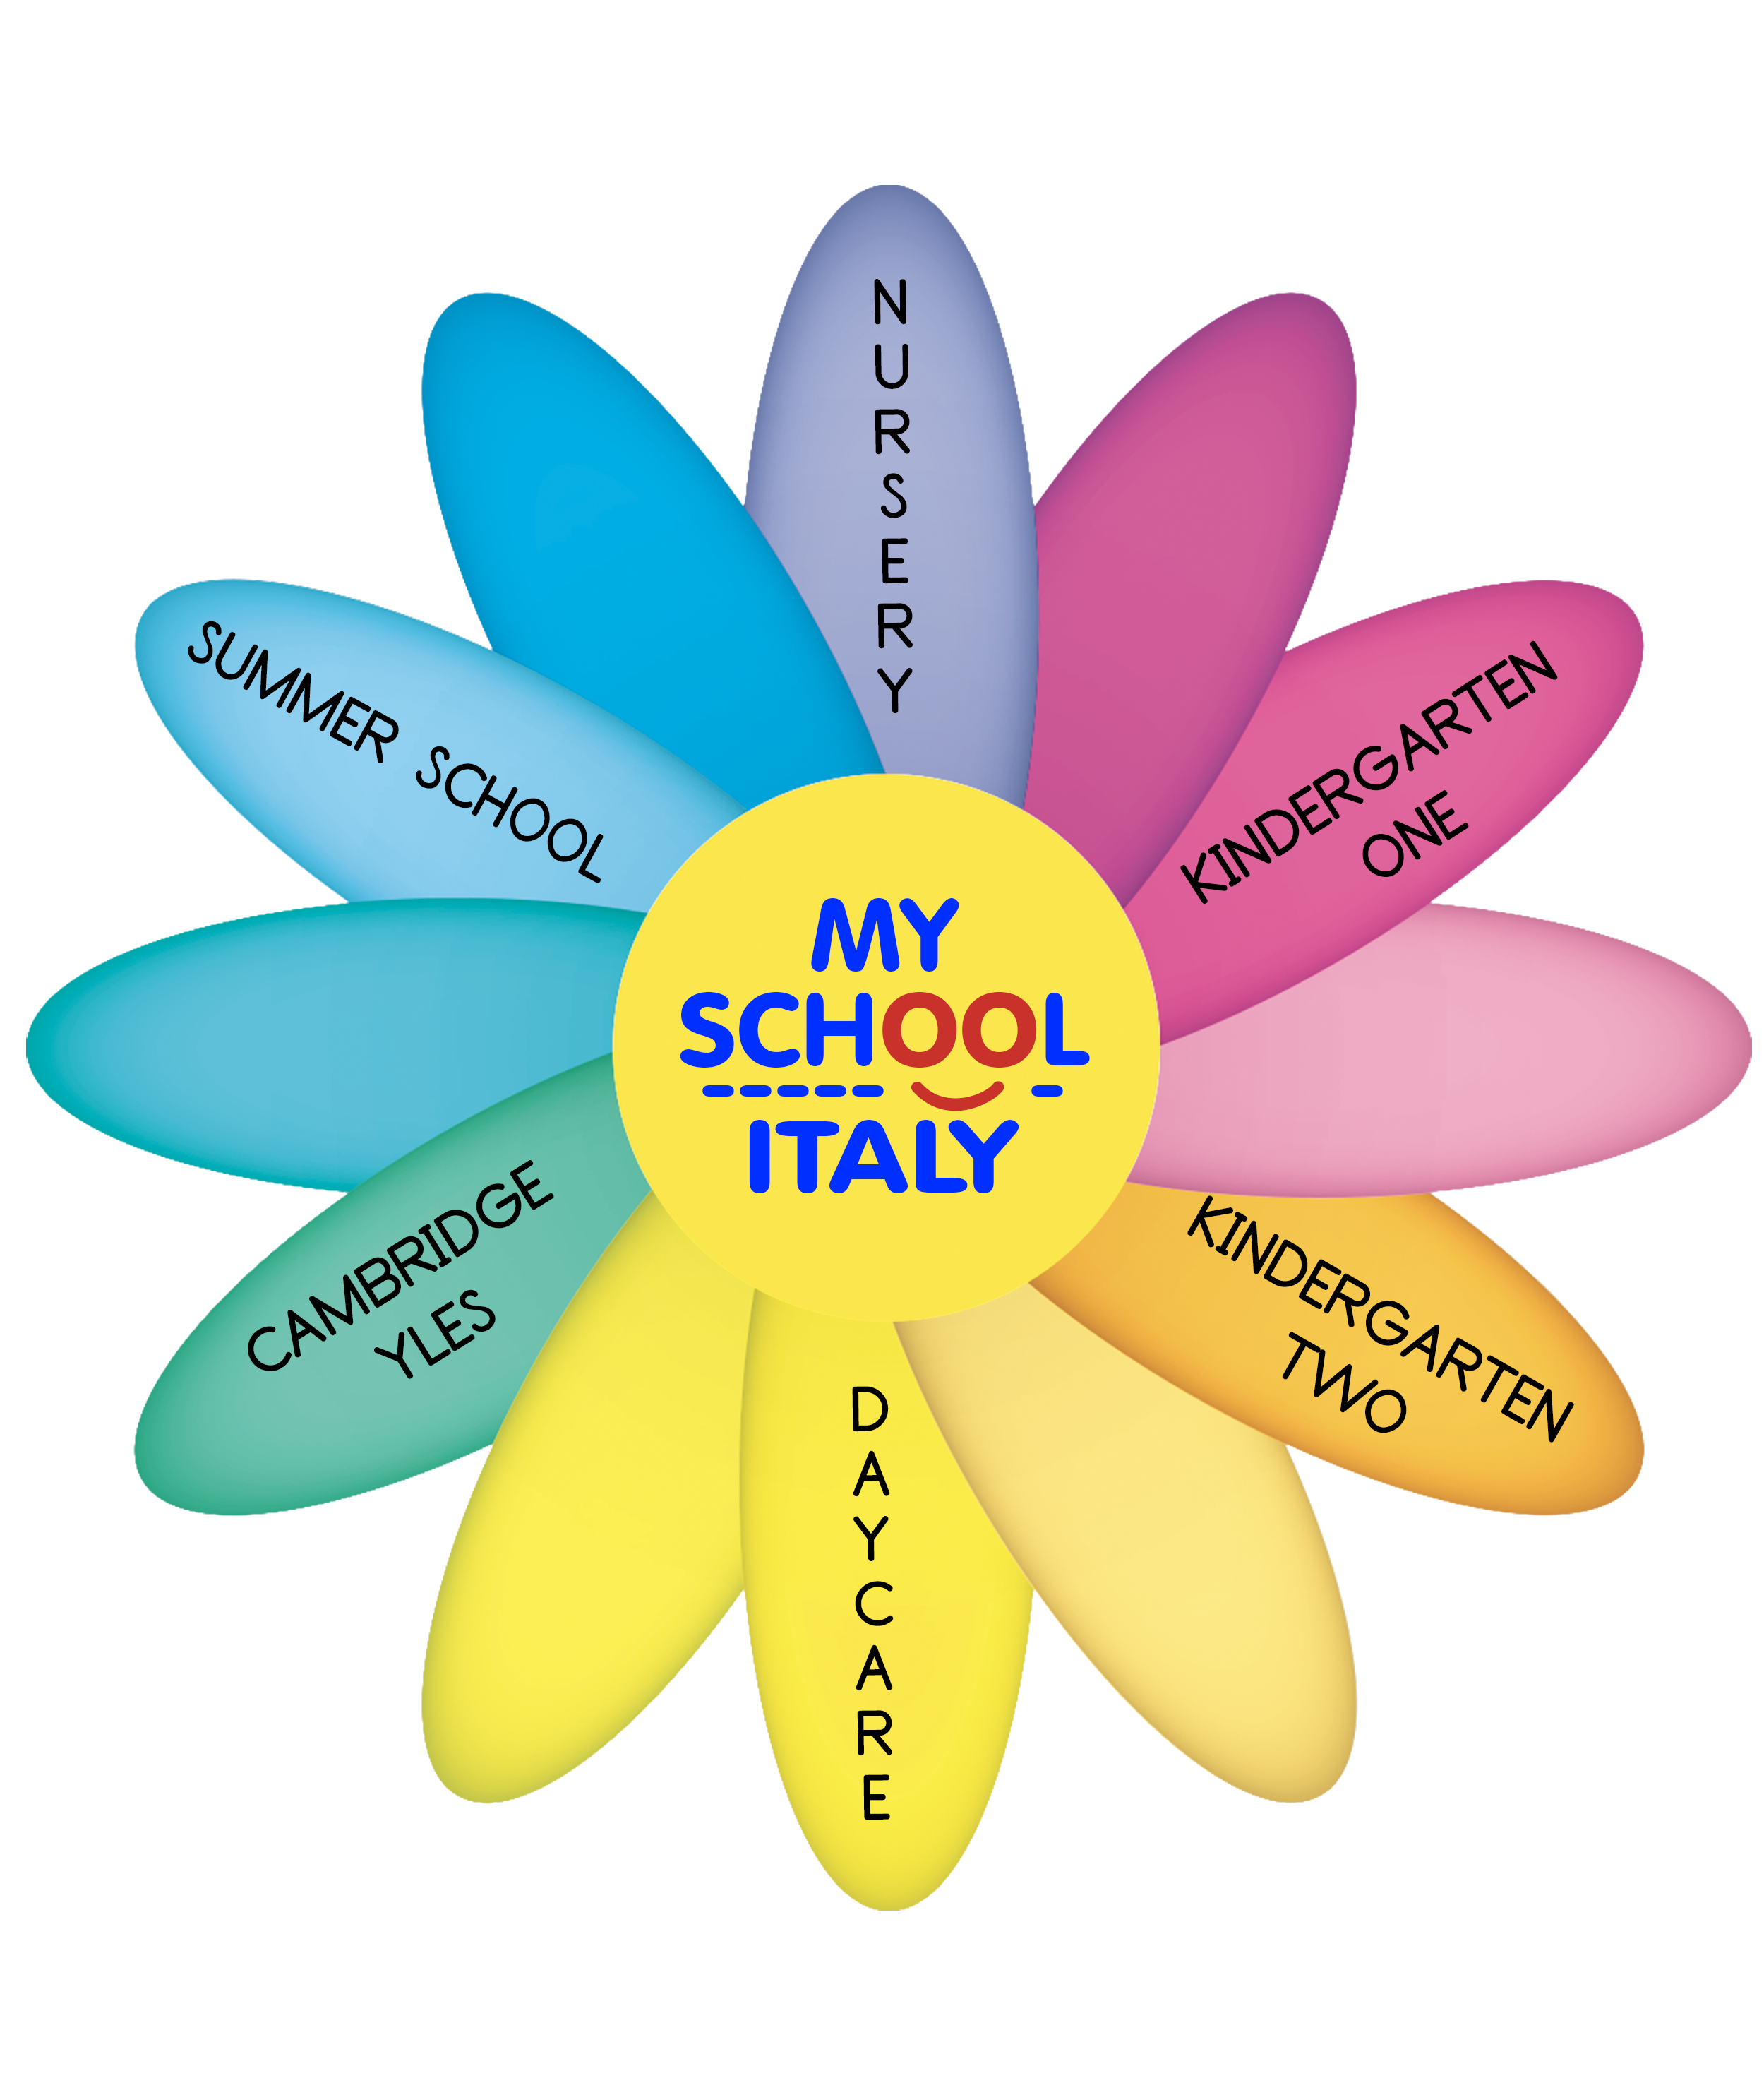 My School ITALY logo